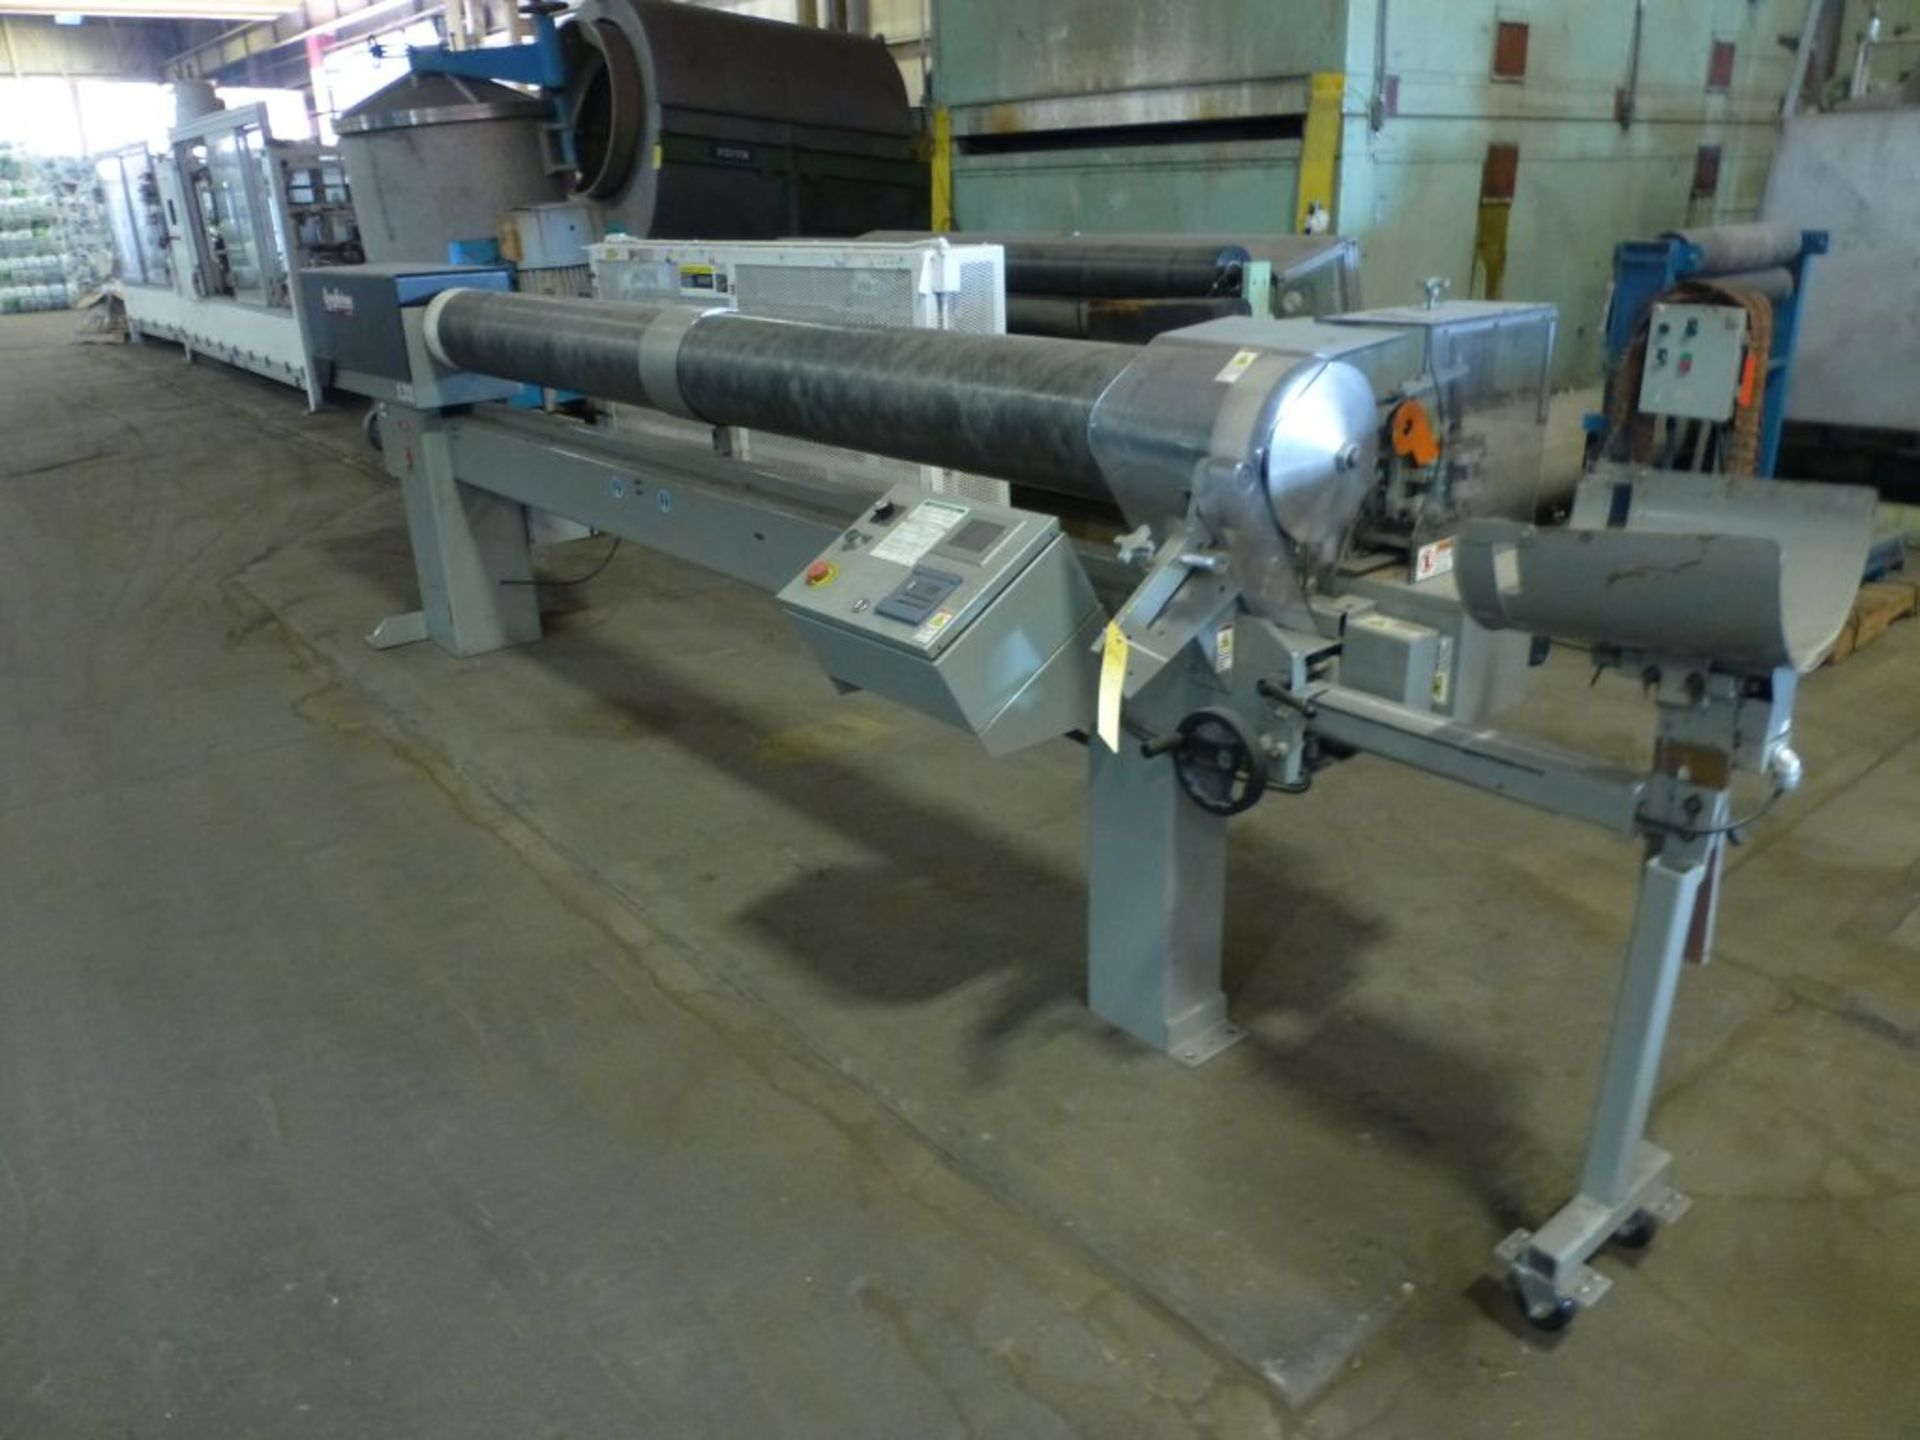 Appleton Automatic Core Cutter | Model No. A301; 2 HP; 460V; 3PH; Mfg: 2010